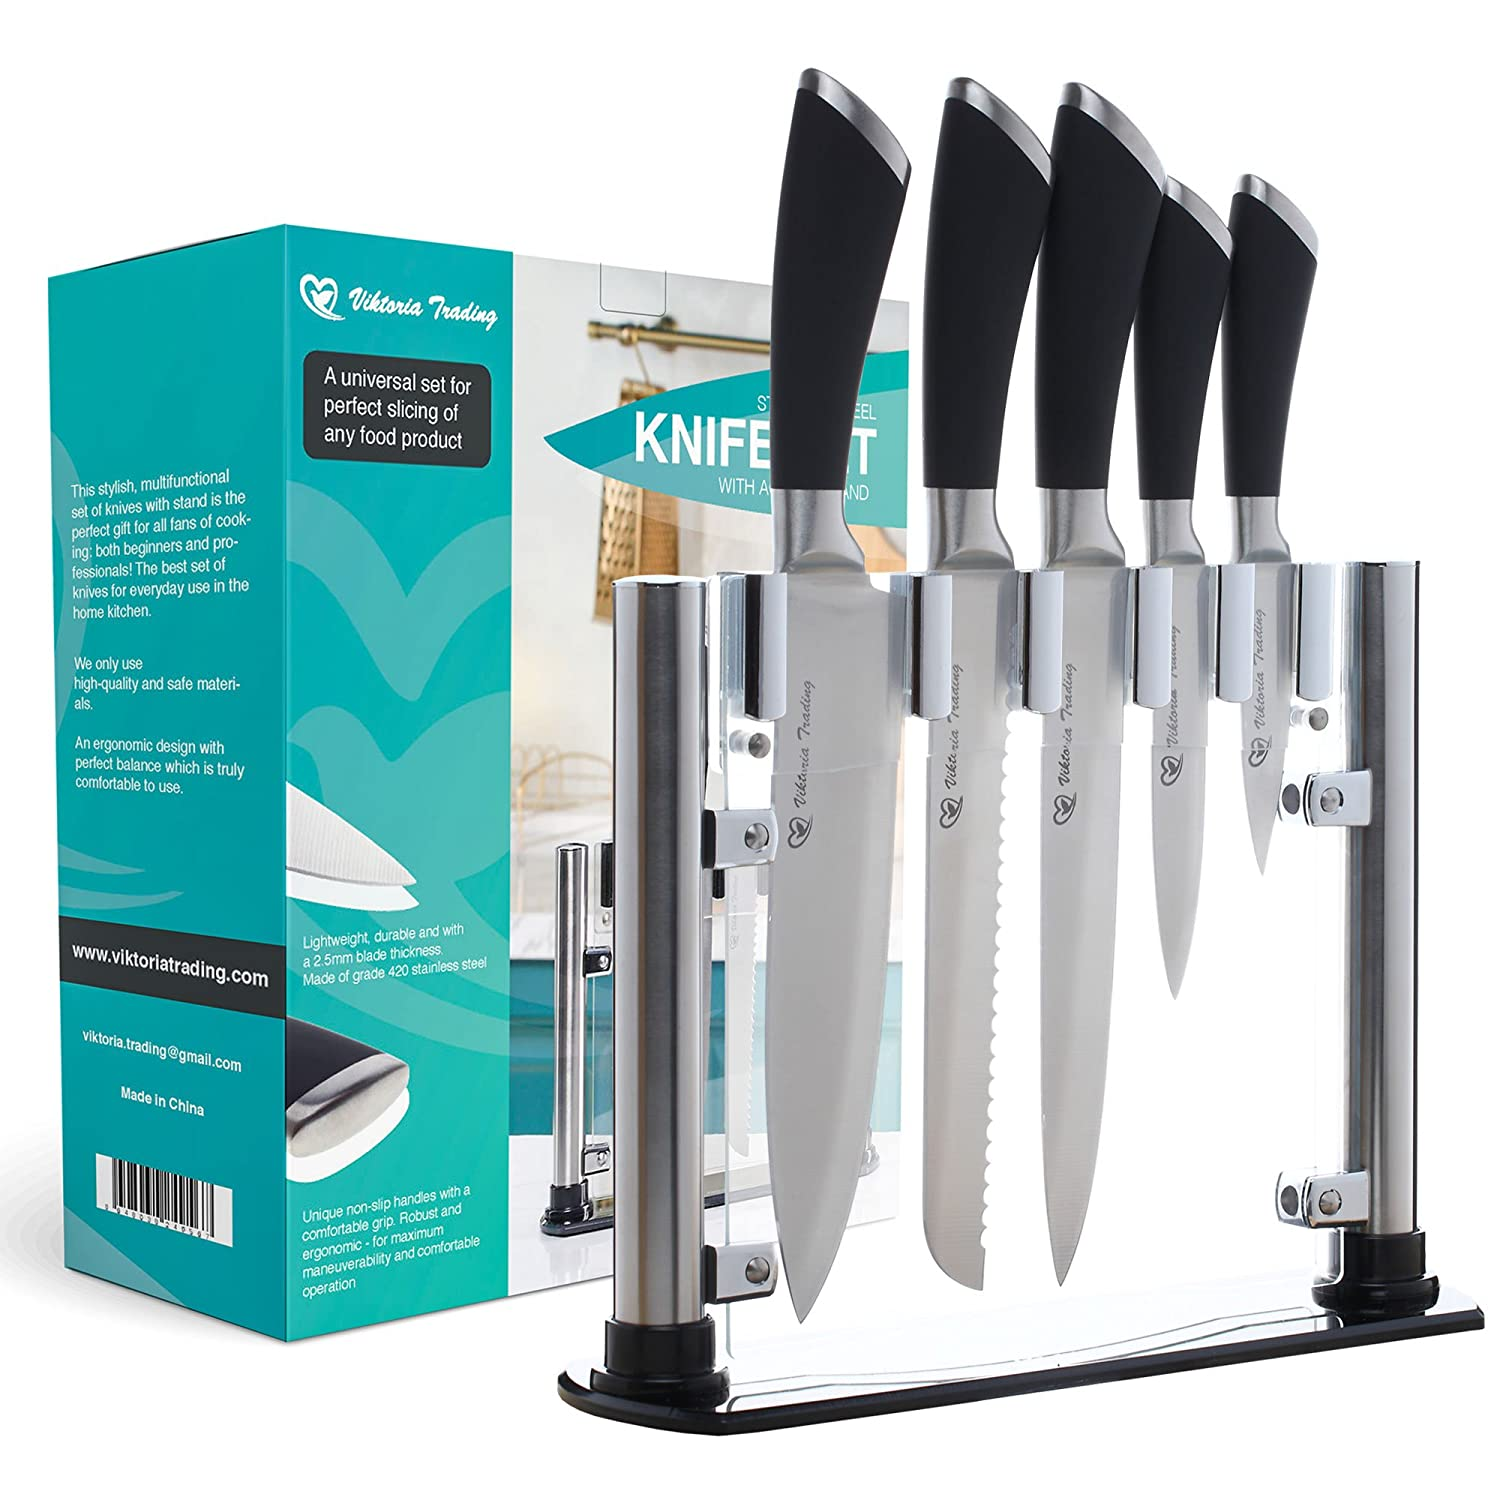 Amazon.com: Stainless Steel Knife Set with Acrylic Stand by Viktoria ...